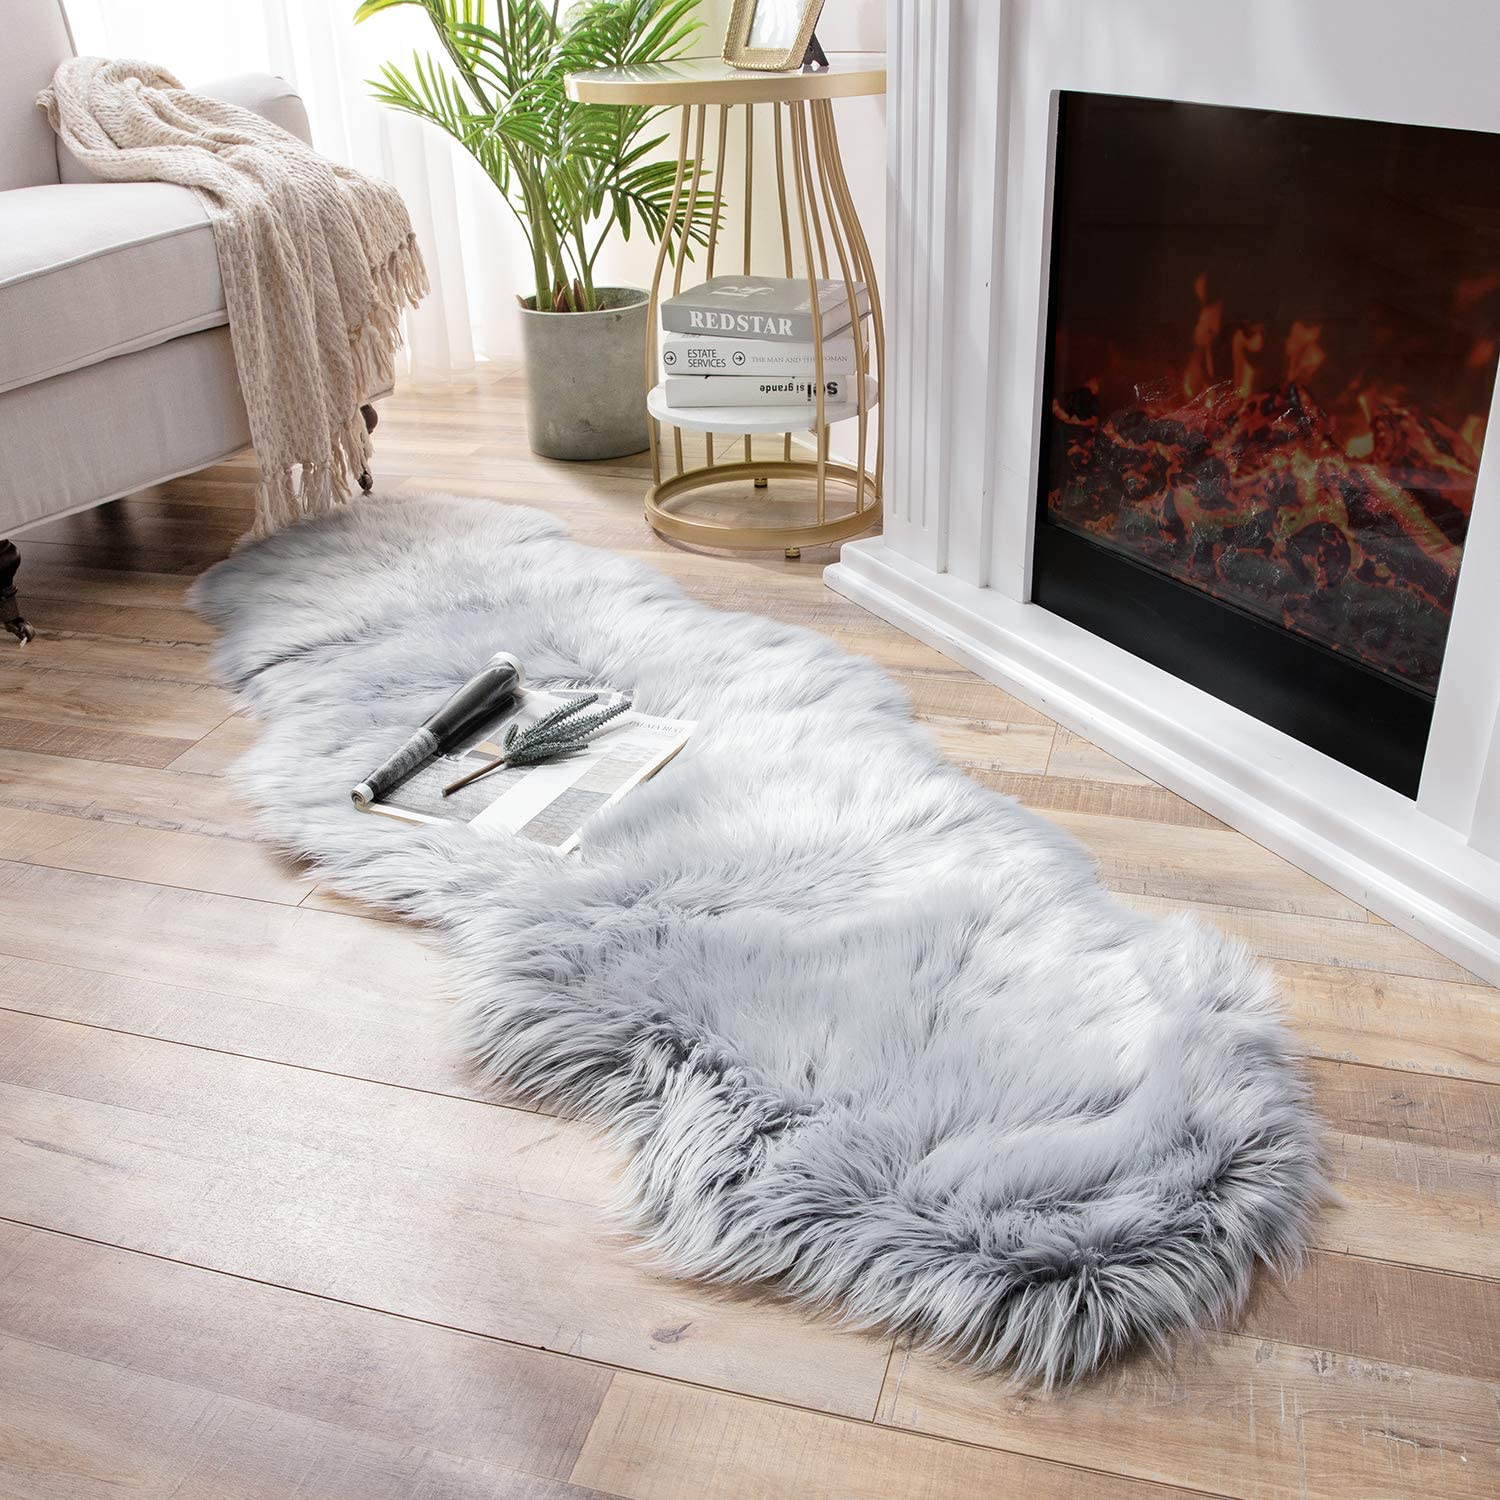 Ashler Soft Faux Sheepskin Fur Chair Couch Cover Area Rug Bedroom Floor Sofa Living Room Light Gray 2 x 6 Feet